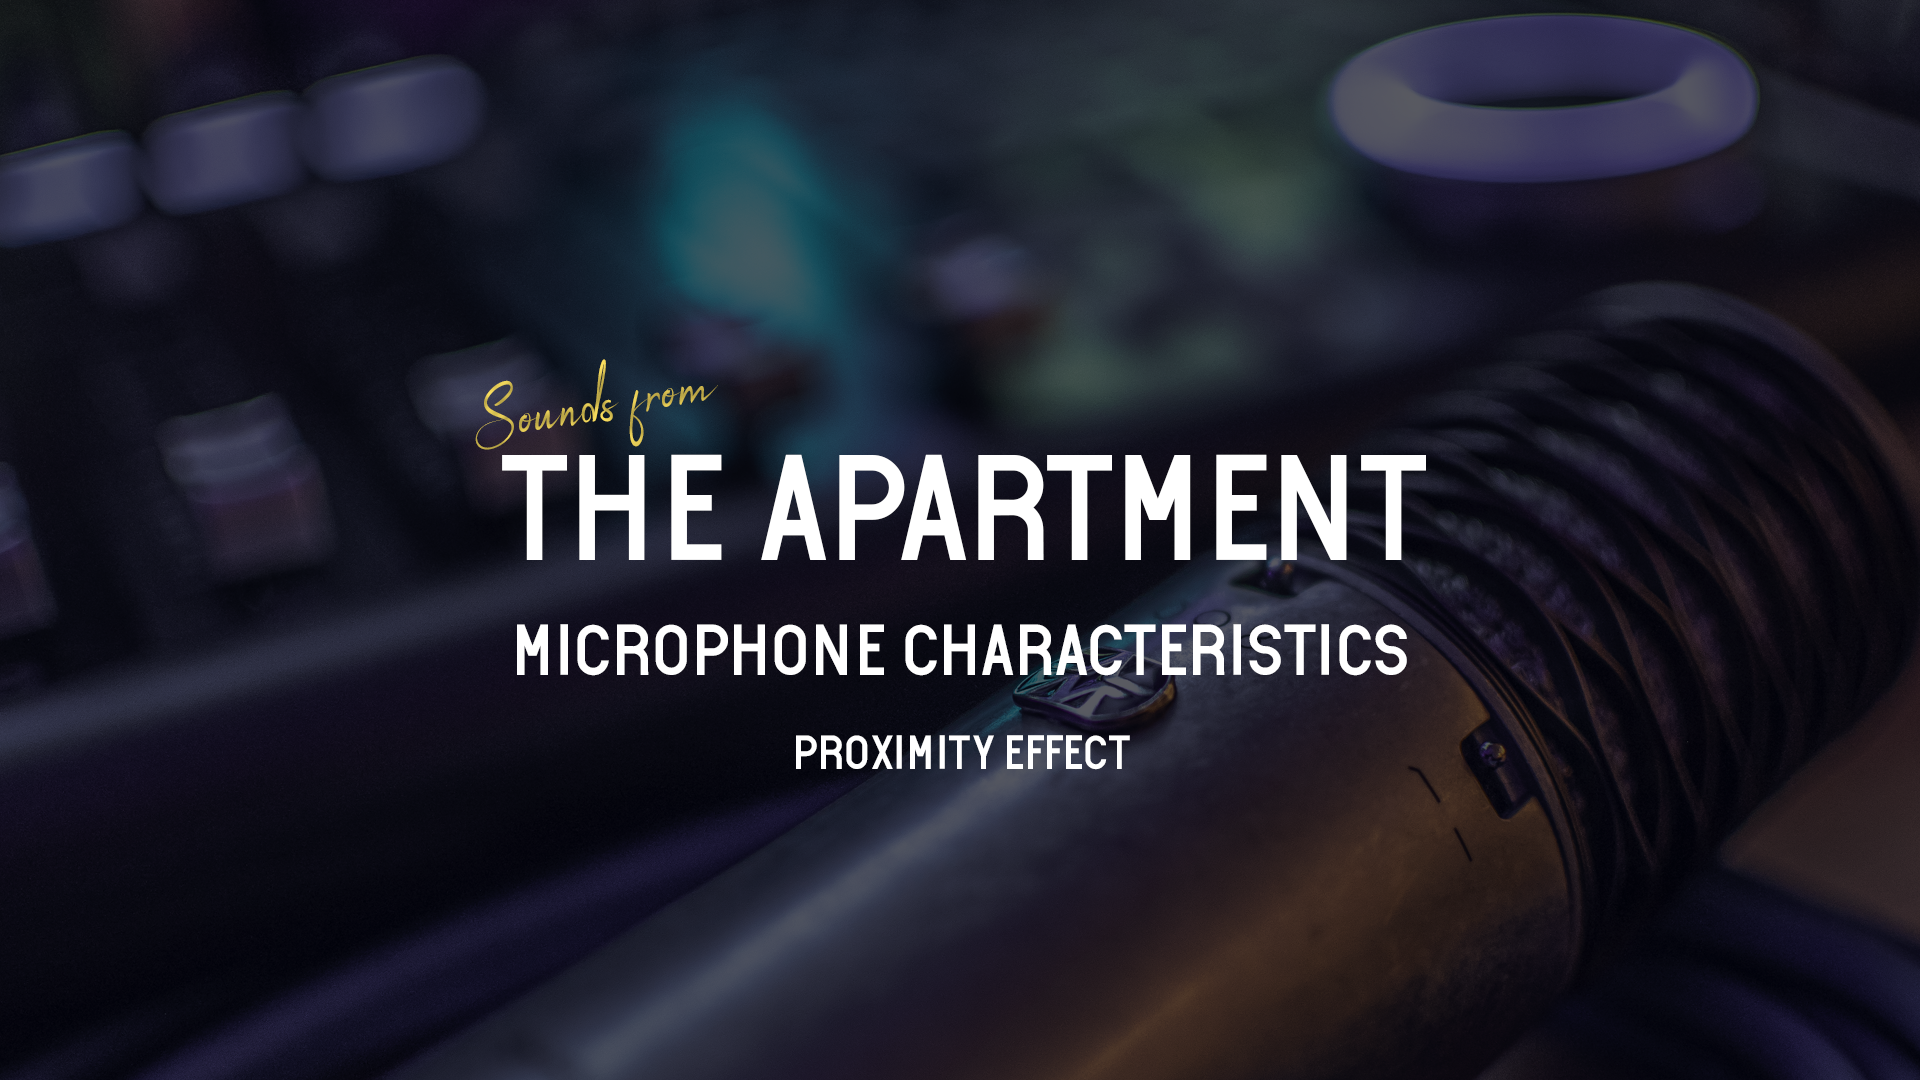 Sounds from the apartment article proximity effect